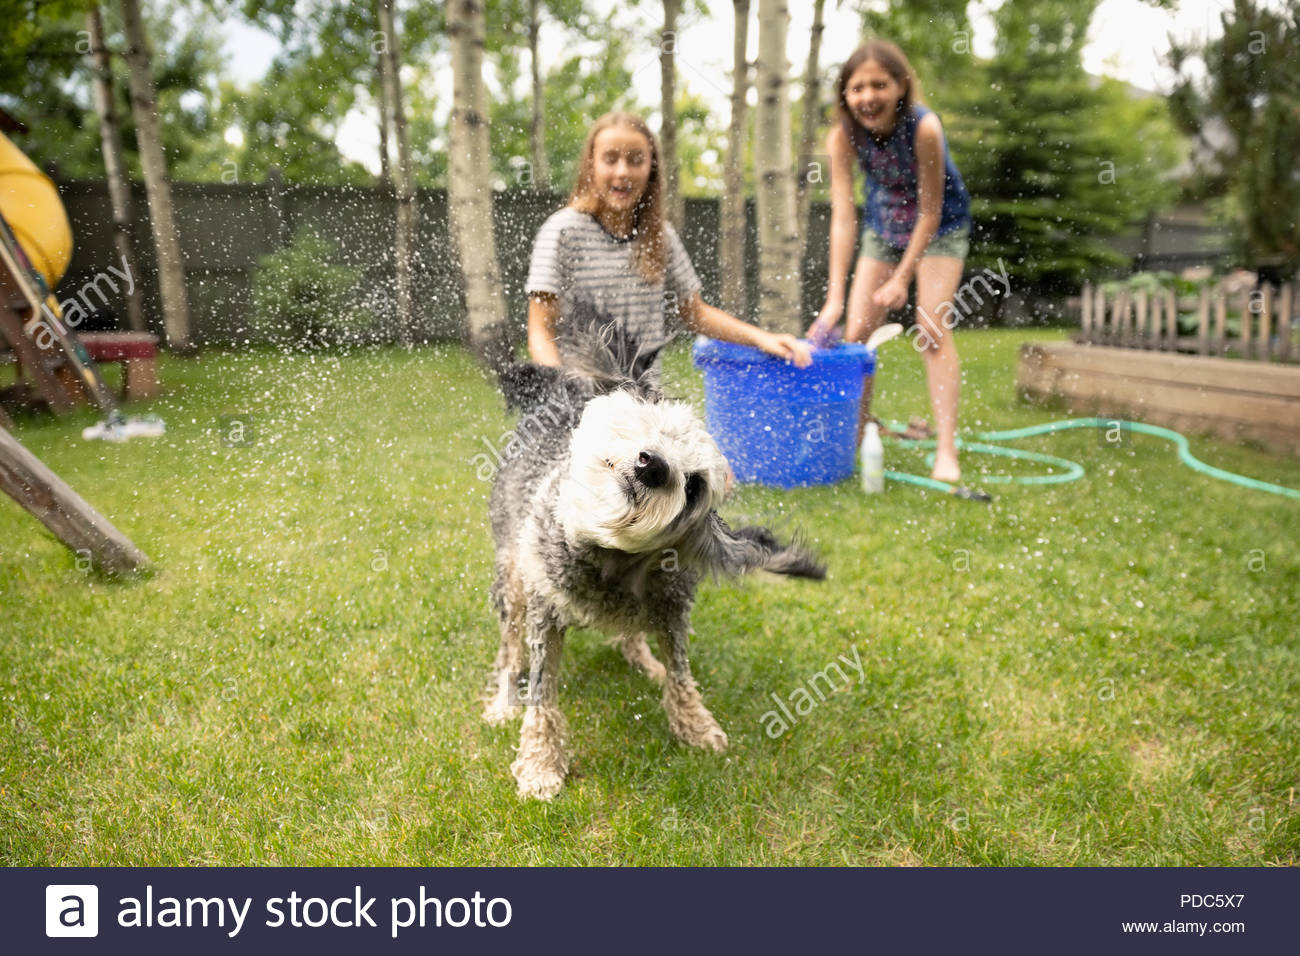 Tween girl friends giving dog bath in backyard, watching dog shaking off water - Stock Image